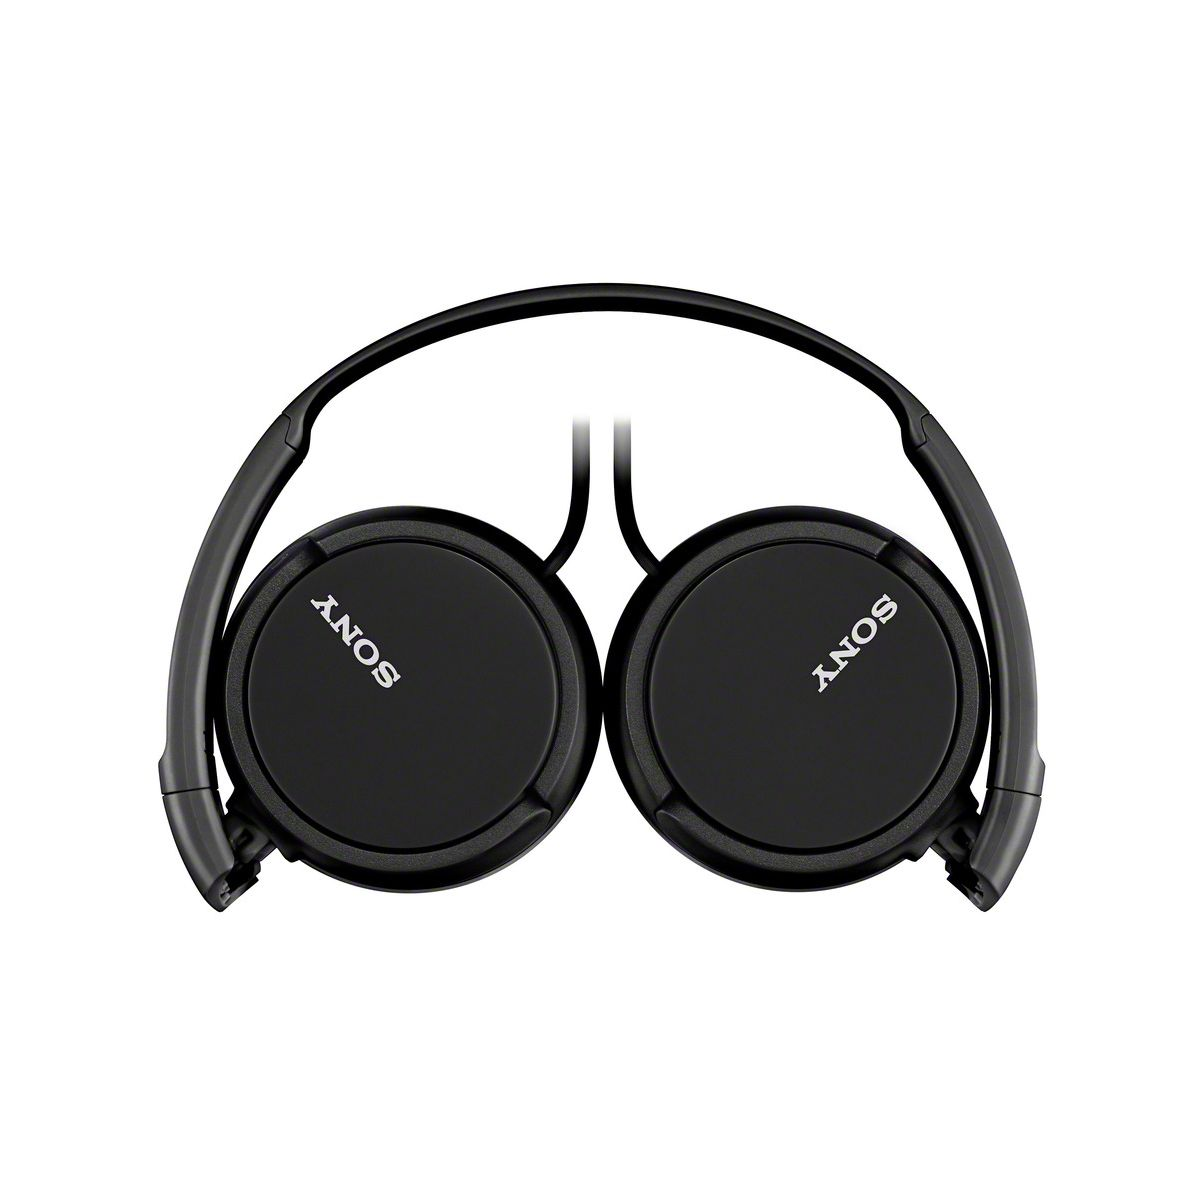 Casque audio sony mdrzx110 noir (photo)